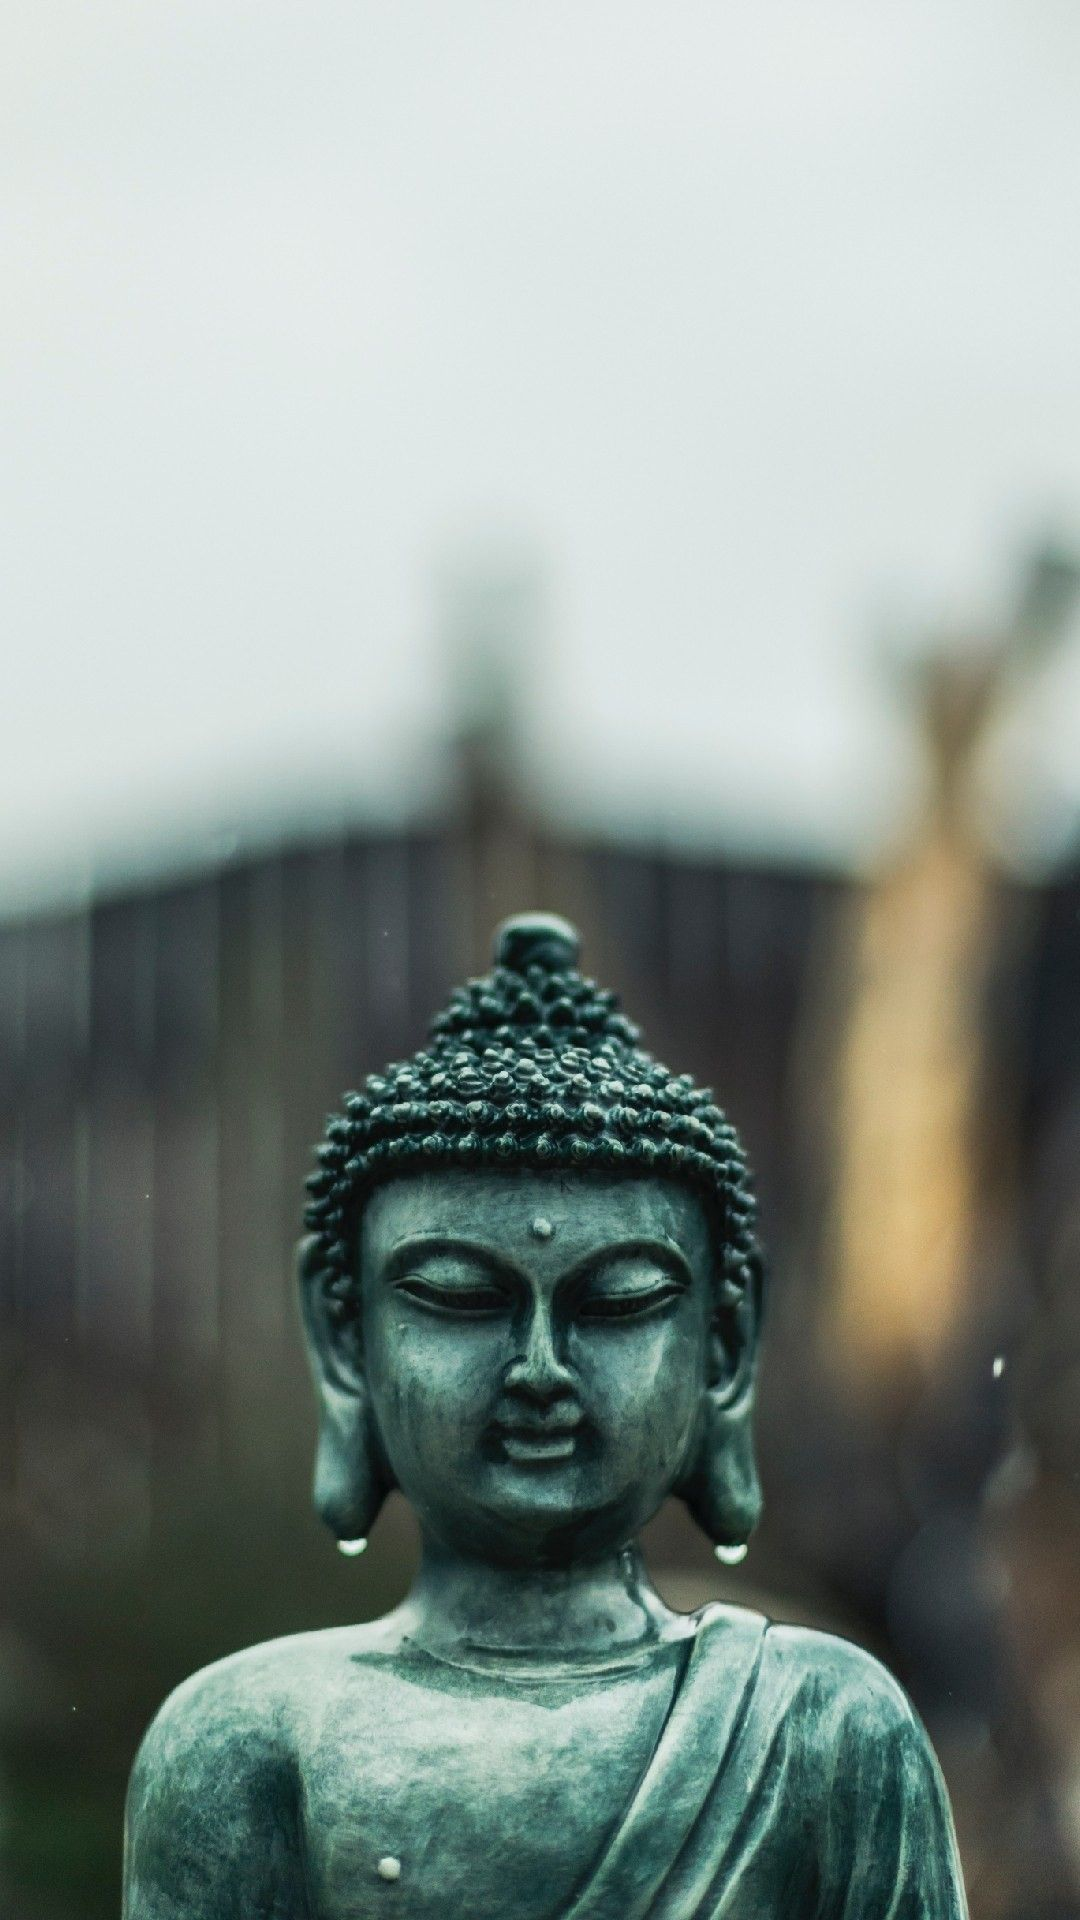 Gautam Buddha Photo Hd Google Search Buddha Image Buddha Wallpaper Iphone Buddha